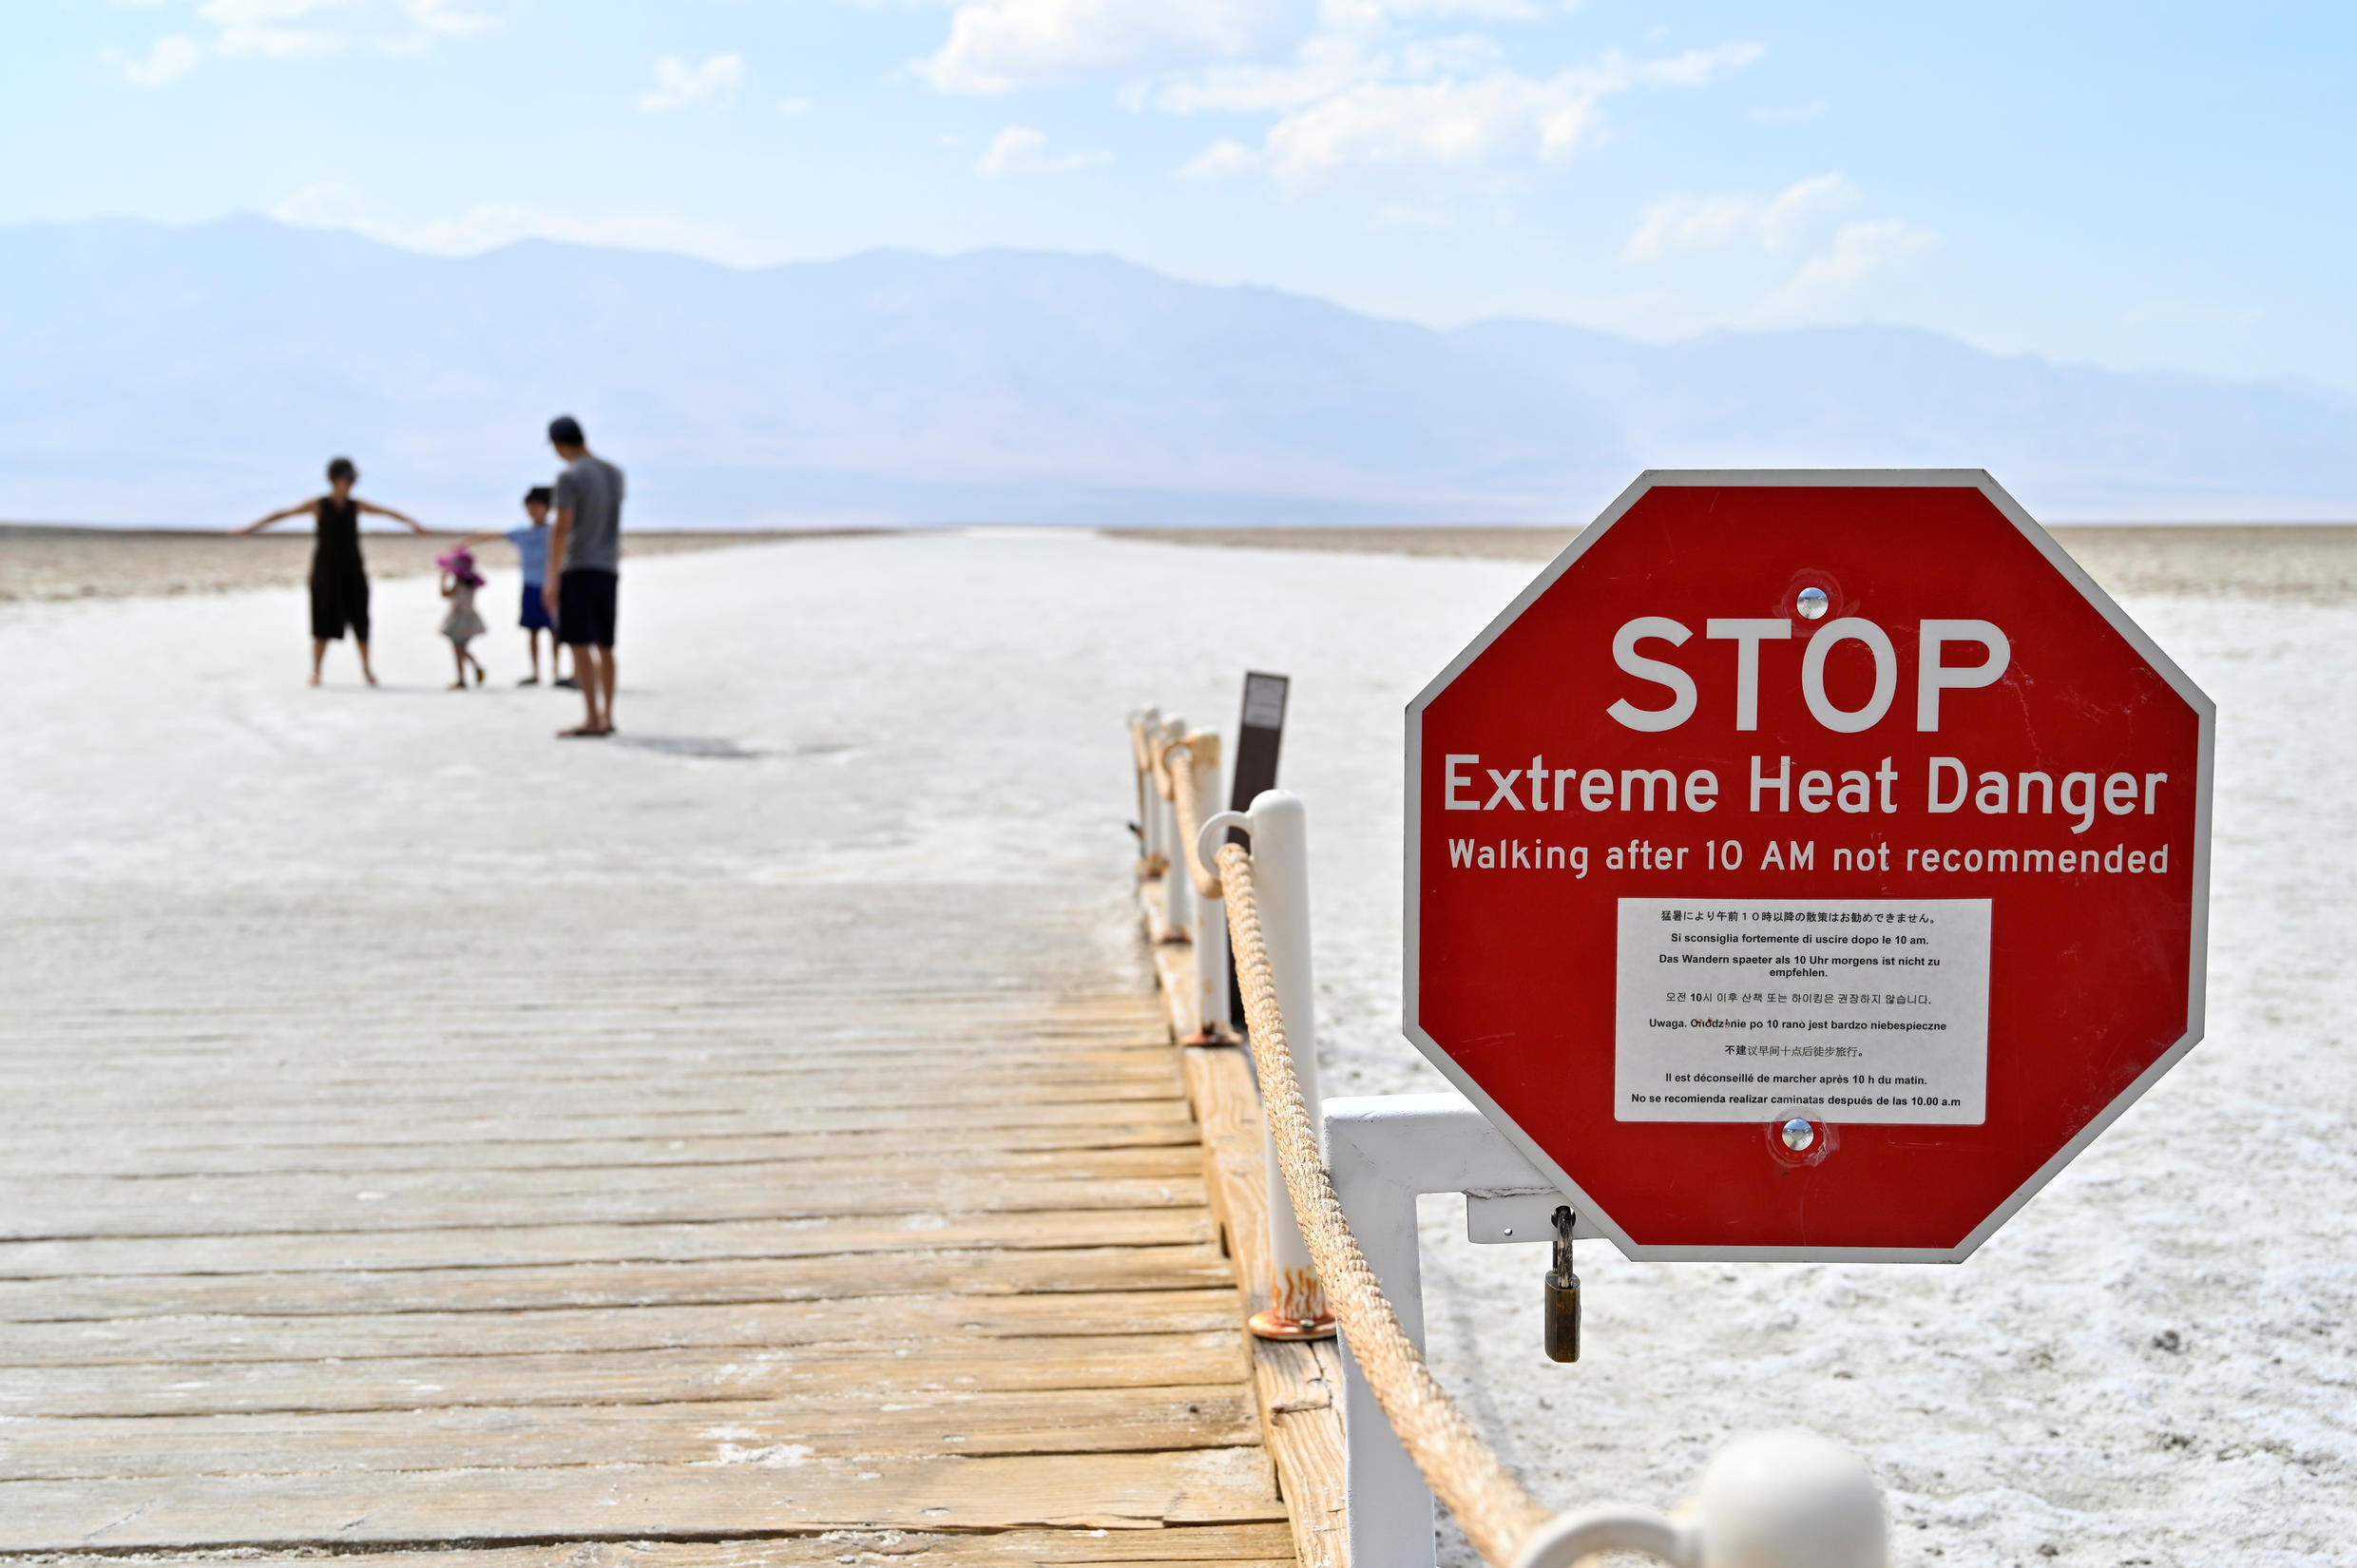 A warning sign alerts visitors of the extreme heat dangers at Badwater Basin, the lowest point in North America at 279 feet below sea level, in Death Valley National Park, California, U.S. August 17, 2020.  REUTERS/David Becker